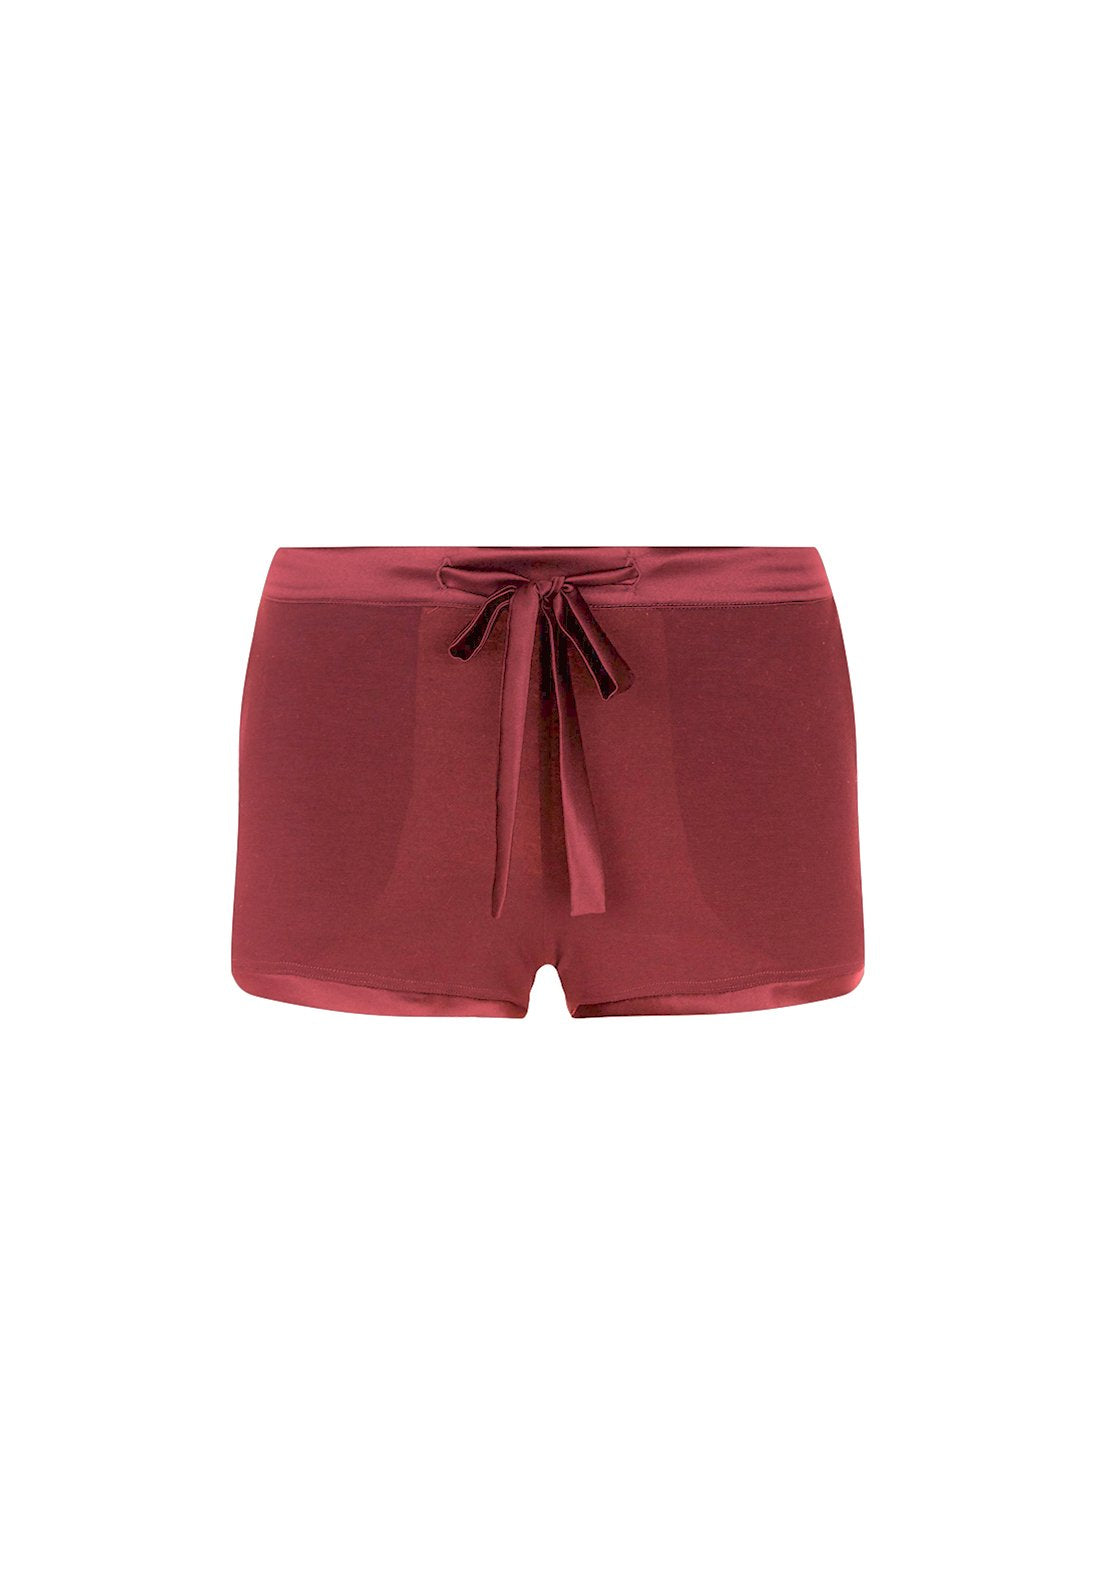 Café Crème Shorts in Dark Berry